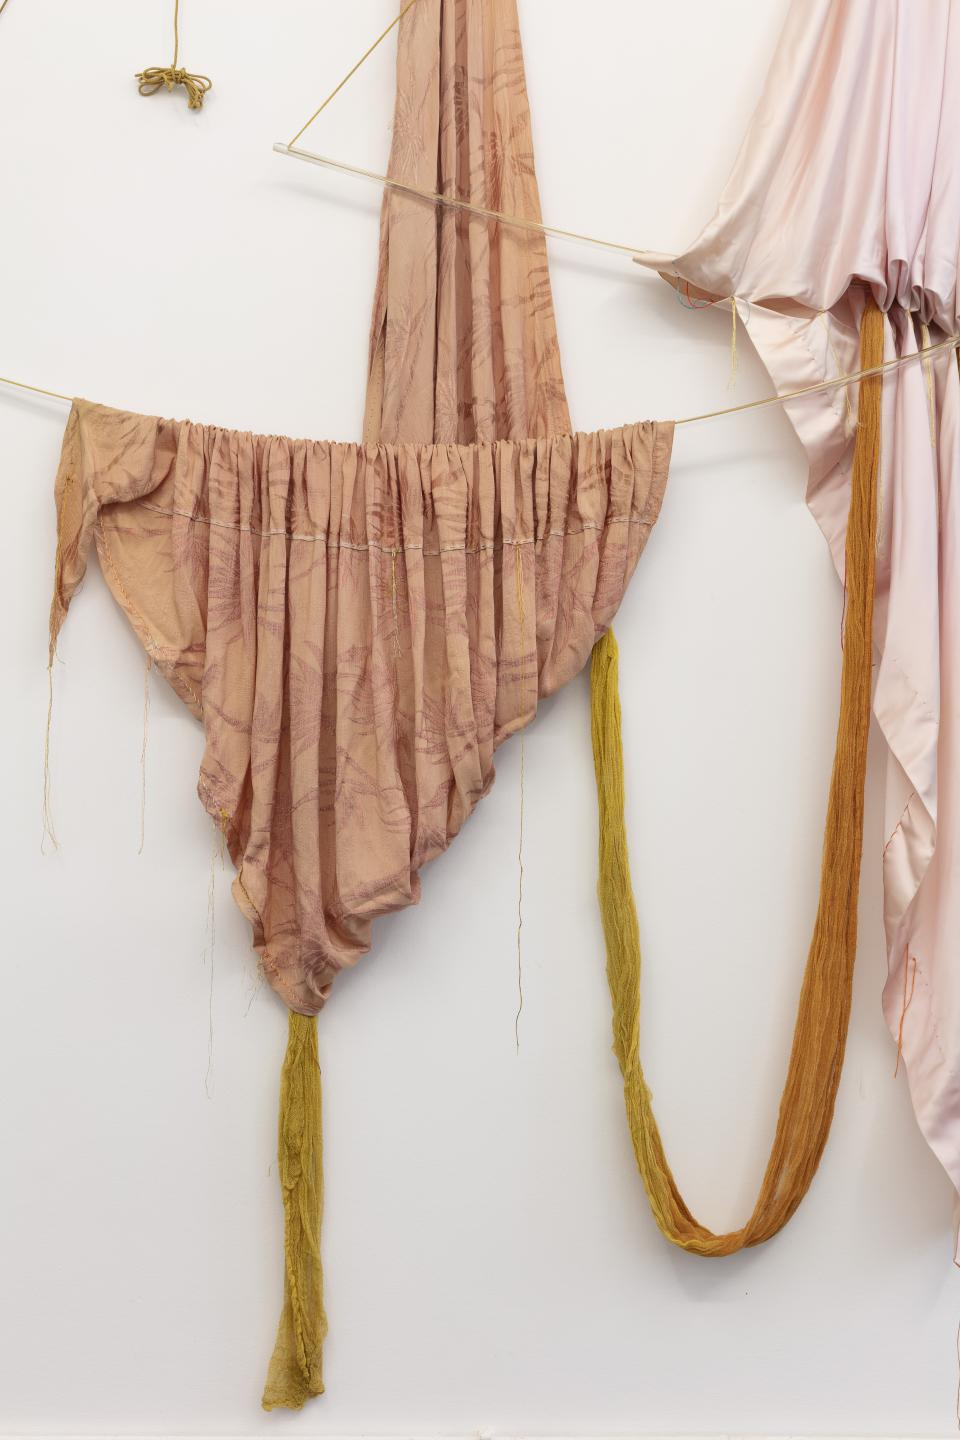 "ChertLüdde ""Rosemary Mayer, Rods Bent Into Bows—Fabric Sculptures and Drawings 1972—1973"", Installationsansicht, 2020"